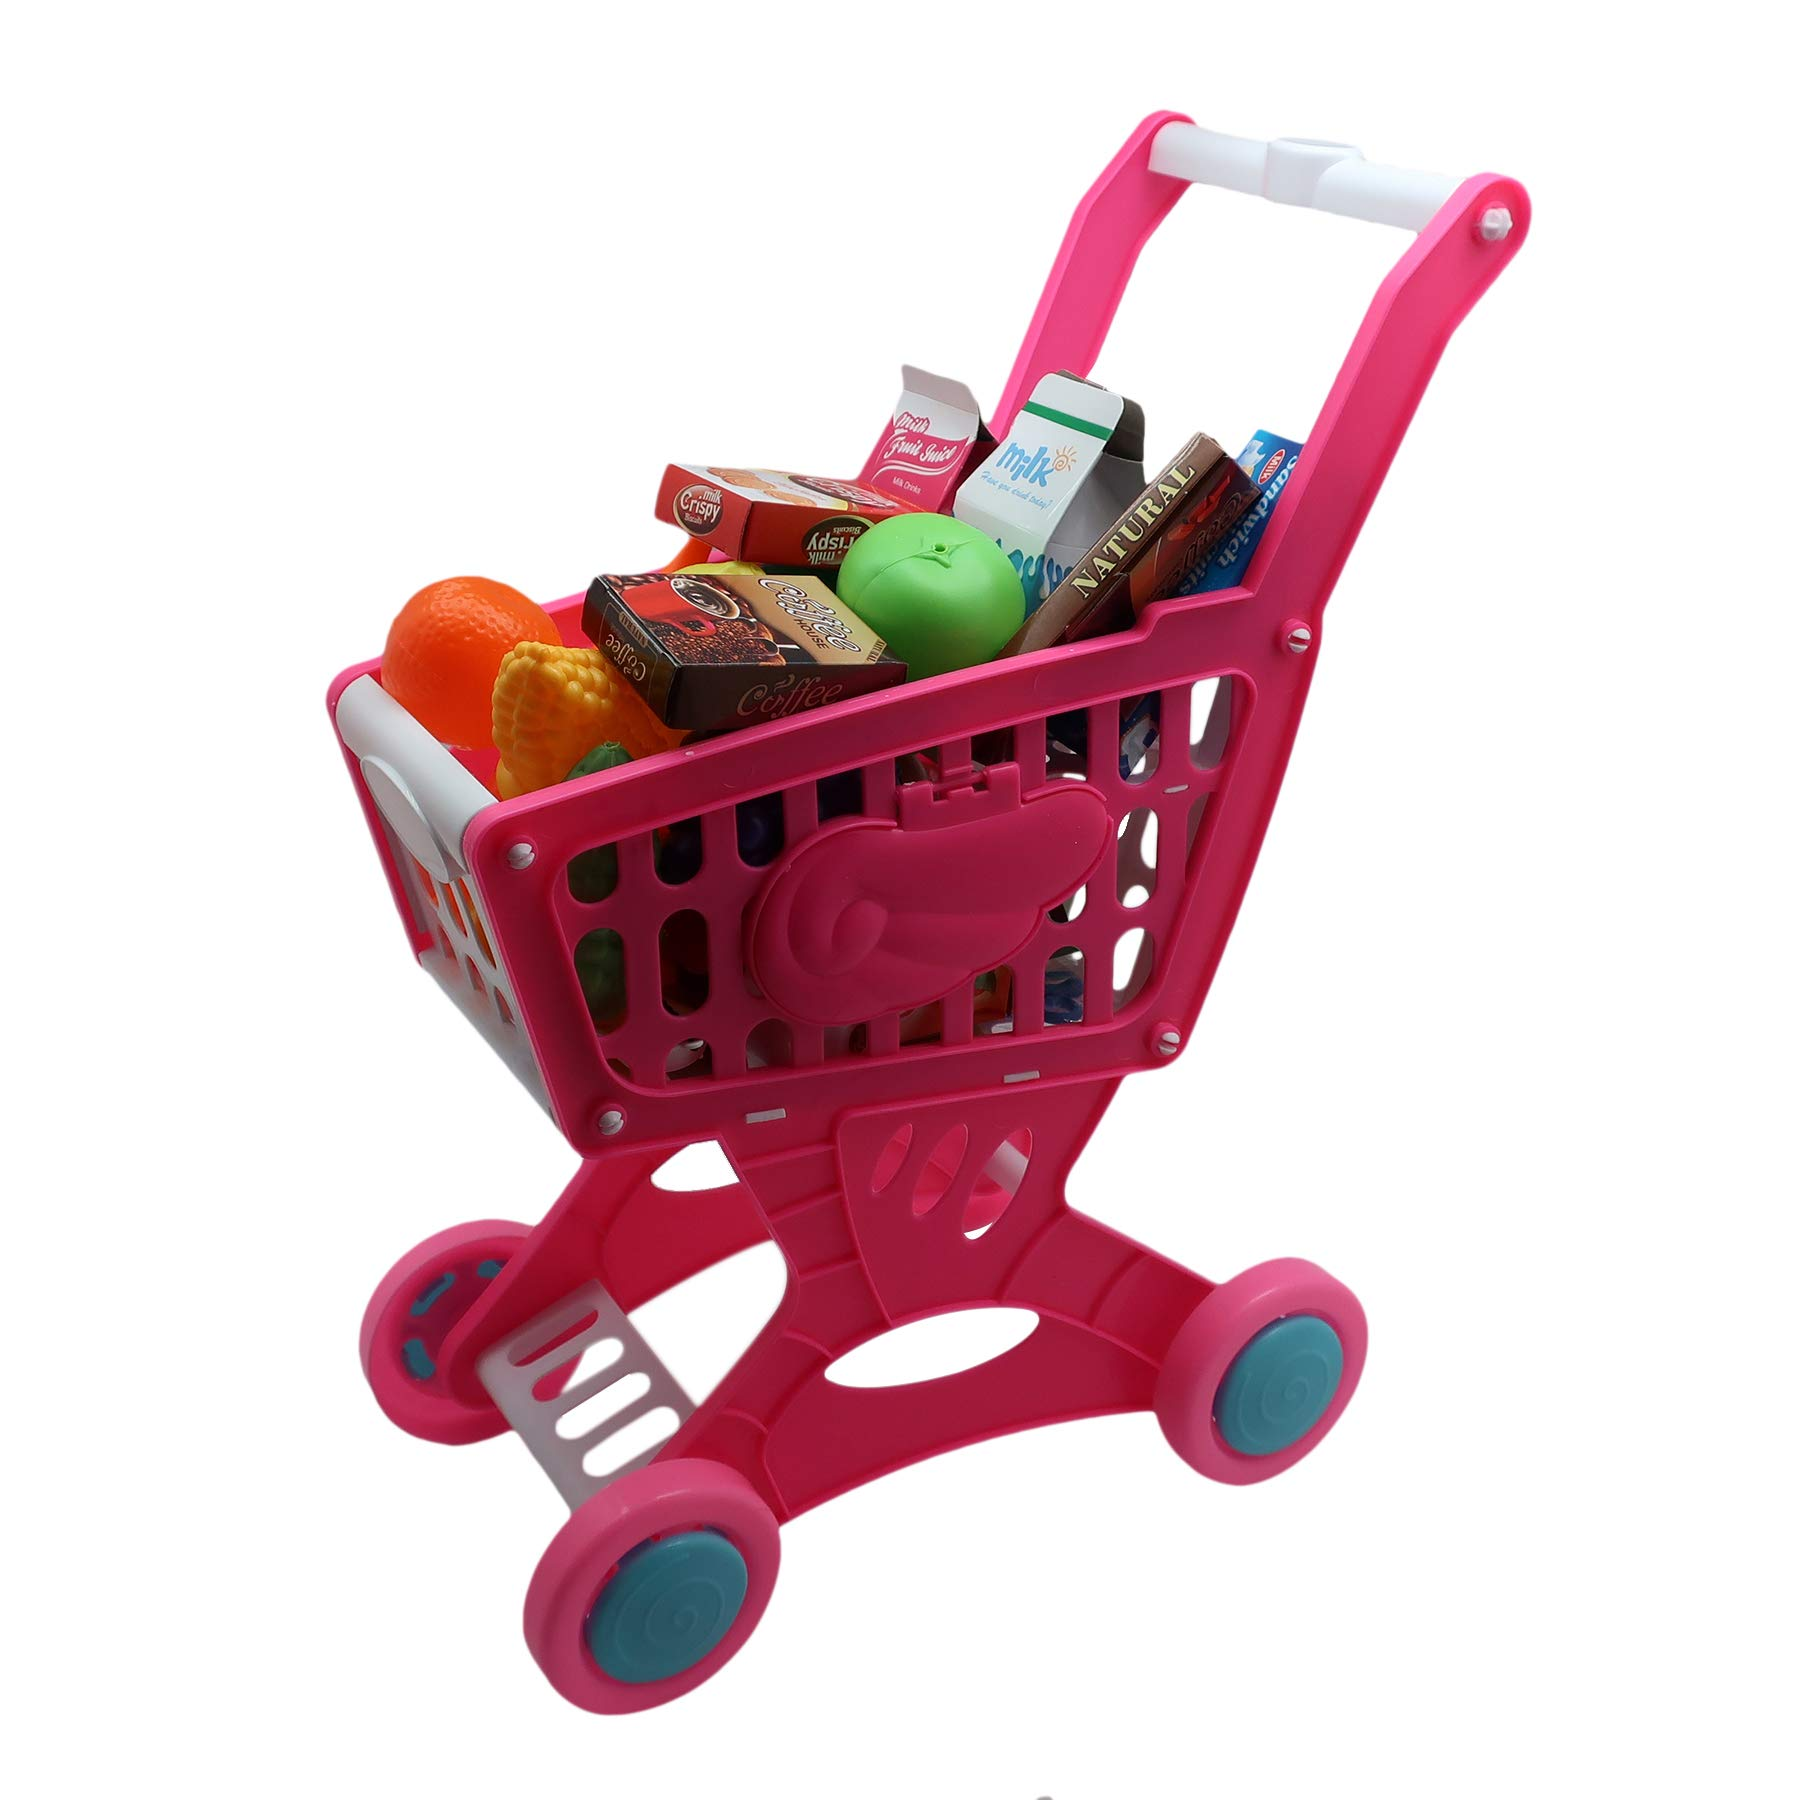 Pretend Play Kids Grocery Toy Shopping Cart with Grocery Items~Healthy Fruits & Vegetables~Juice & Other Food Items~Great Gift for Boys and Girls!